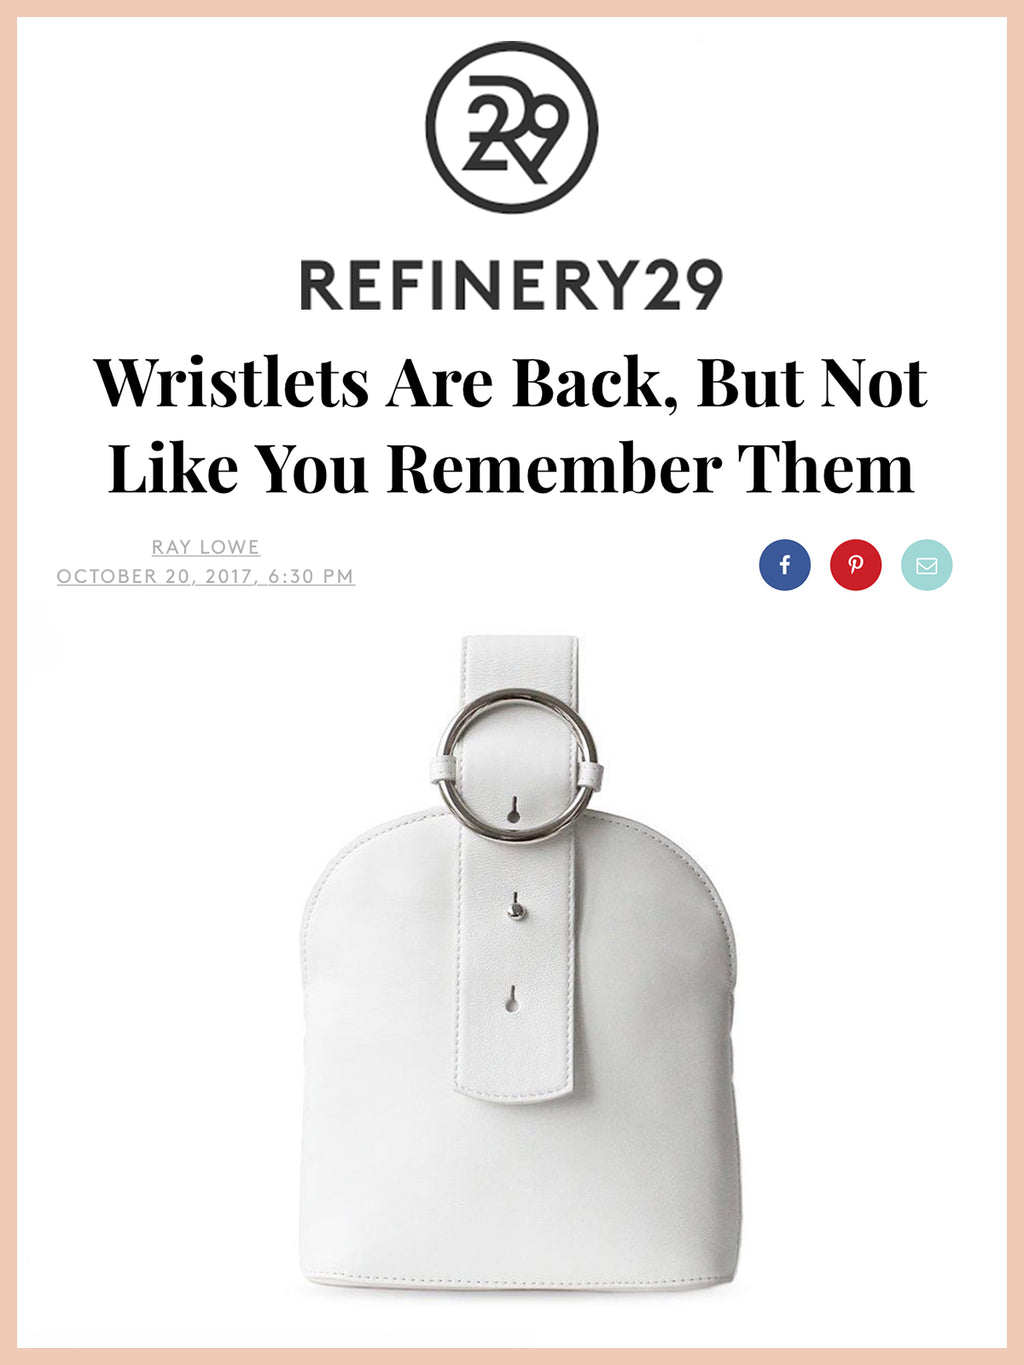 REFINERY29, Wristlets Are Back